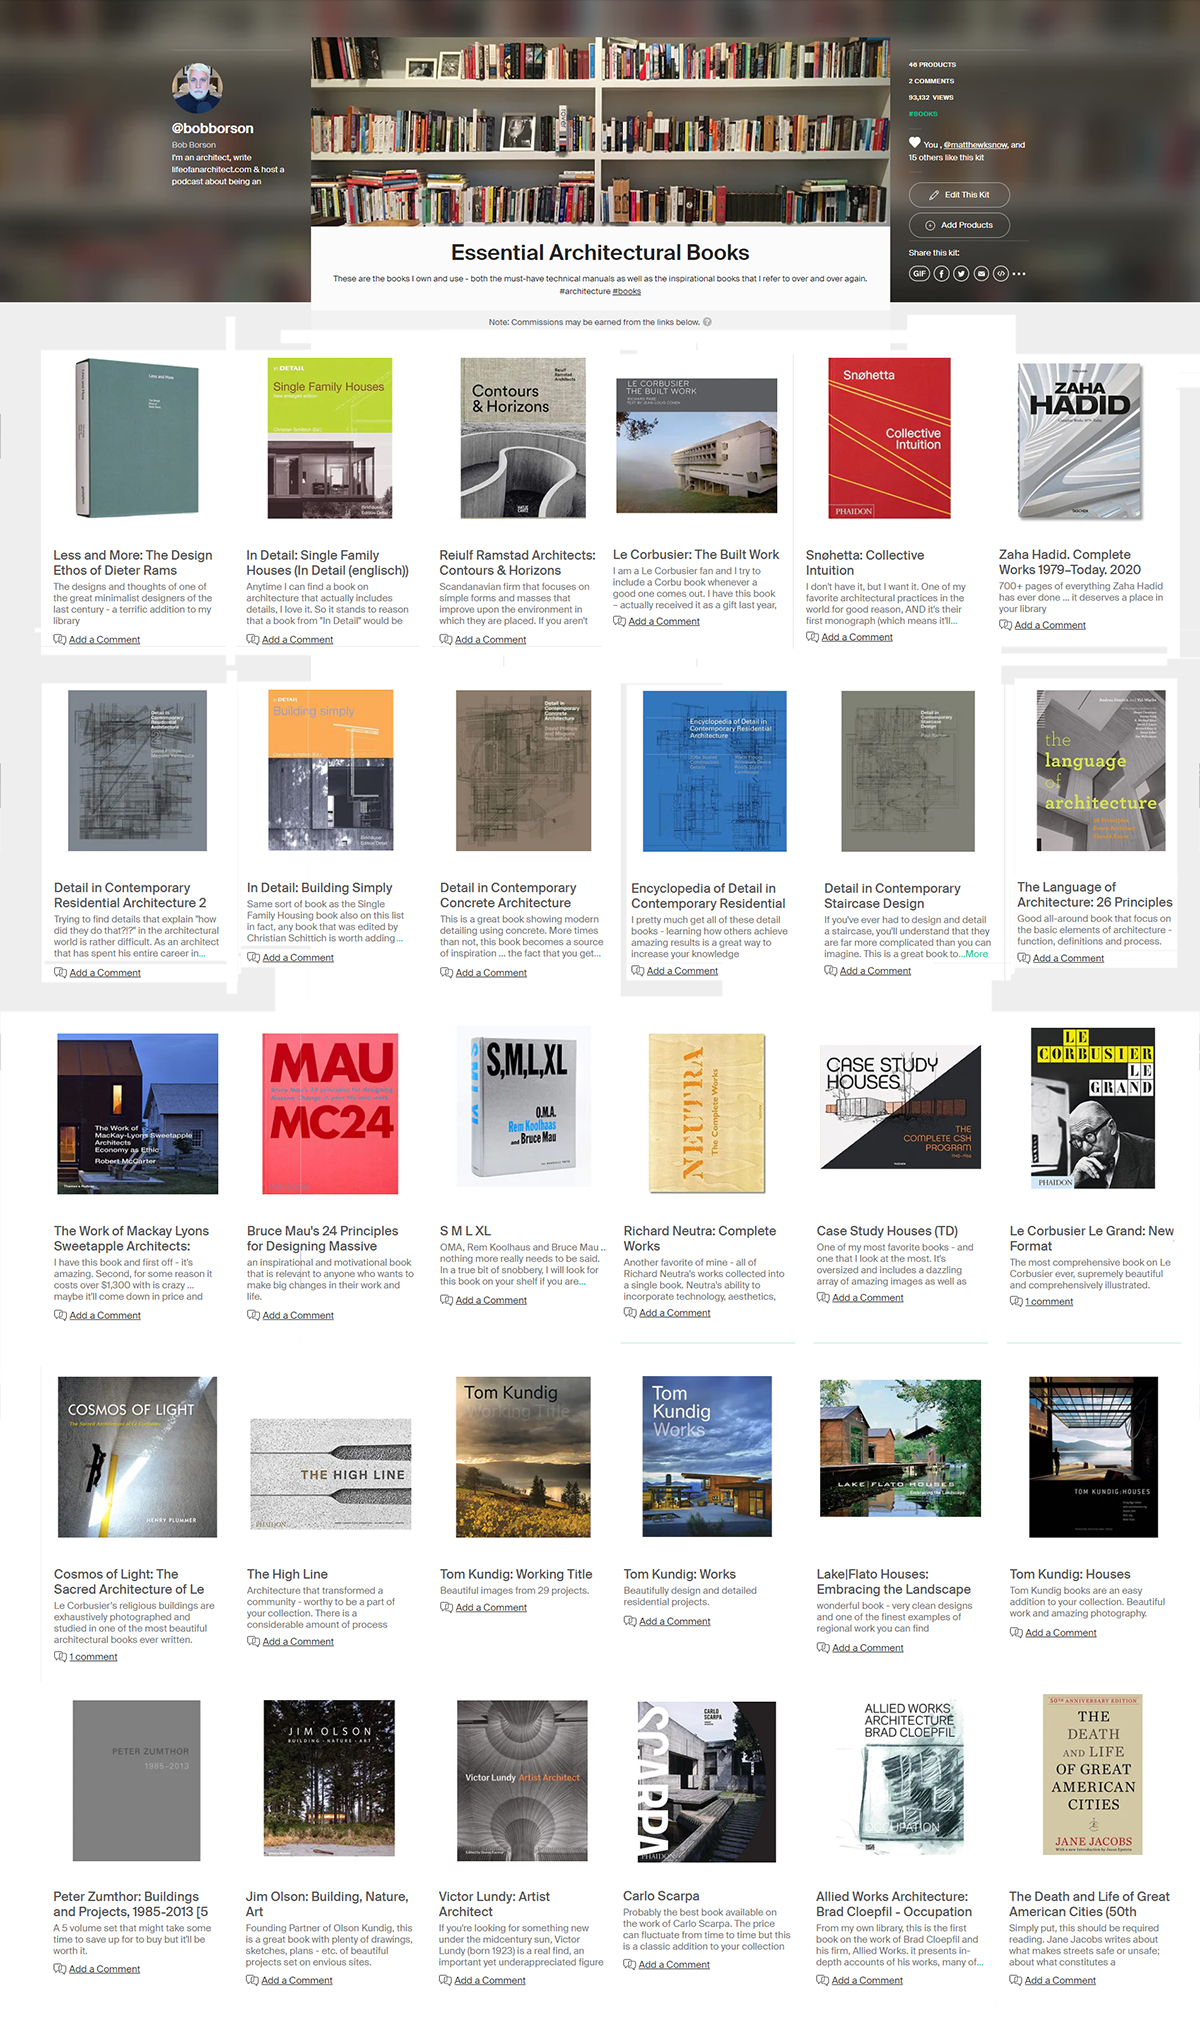 Architecture Books - 2020